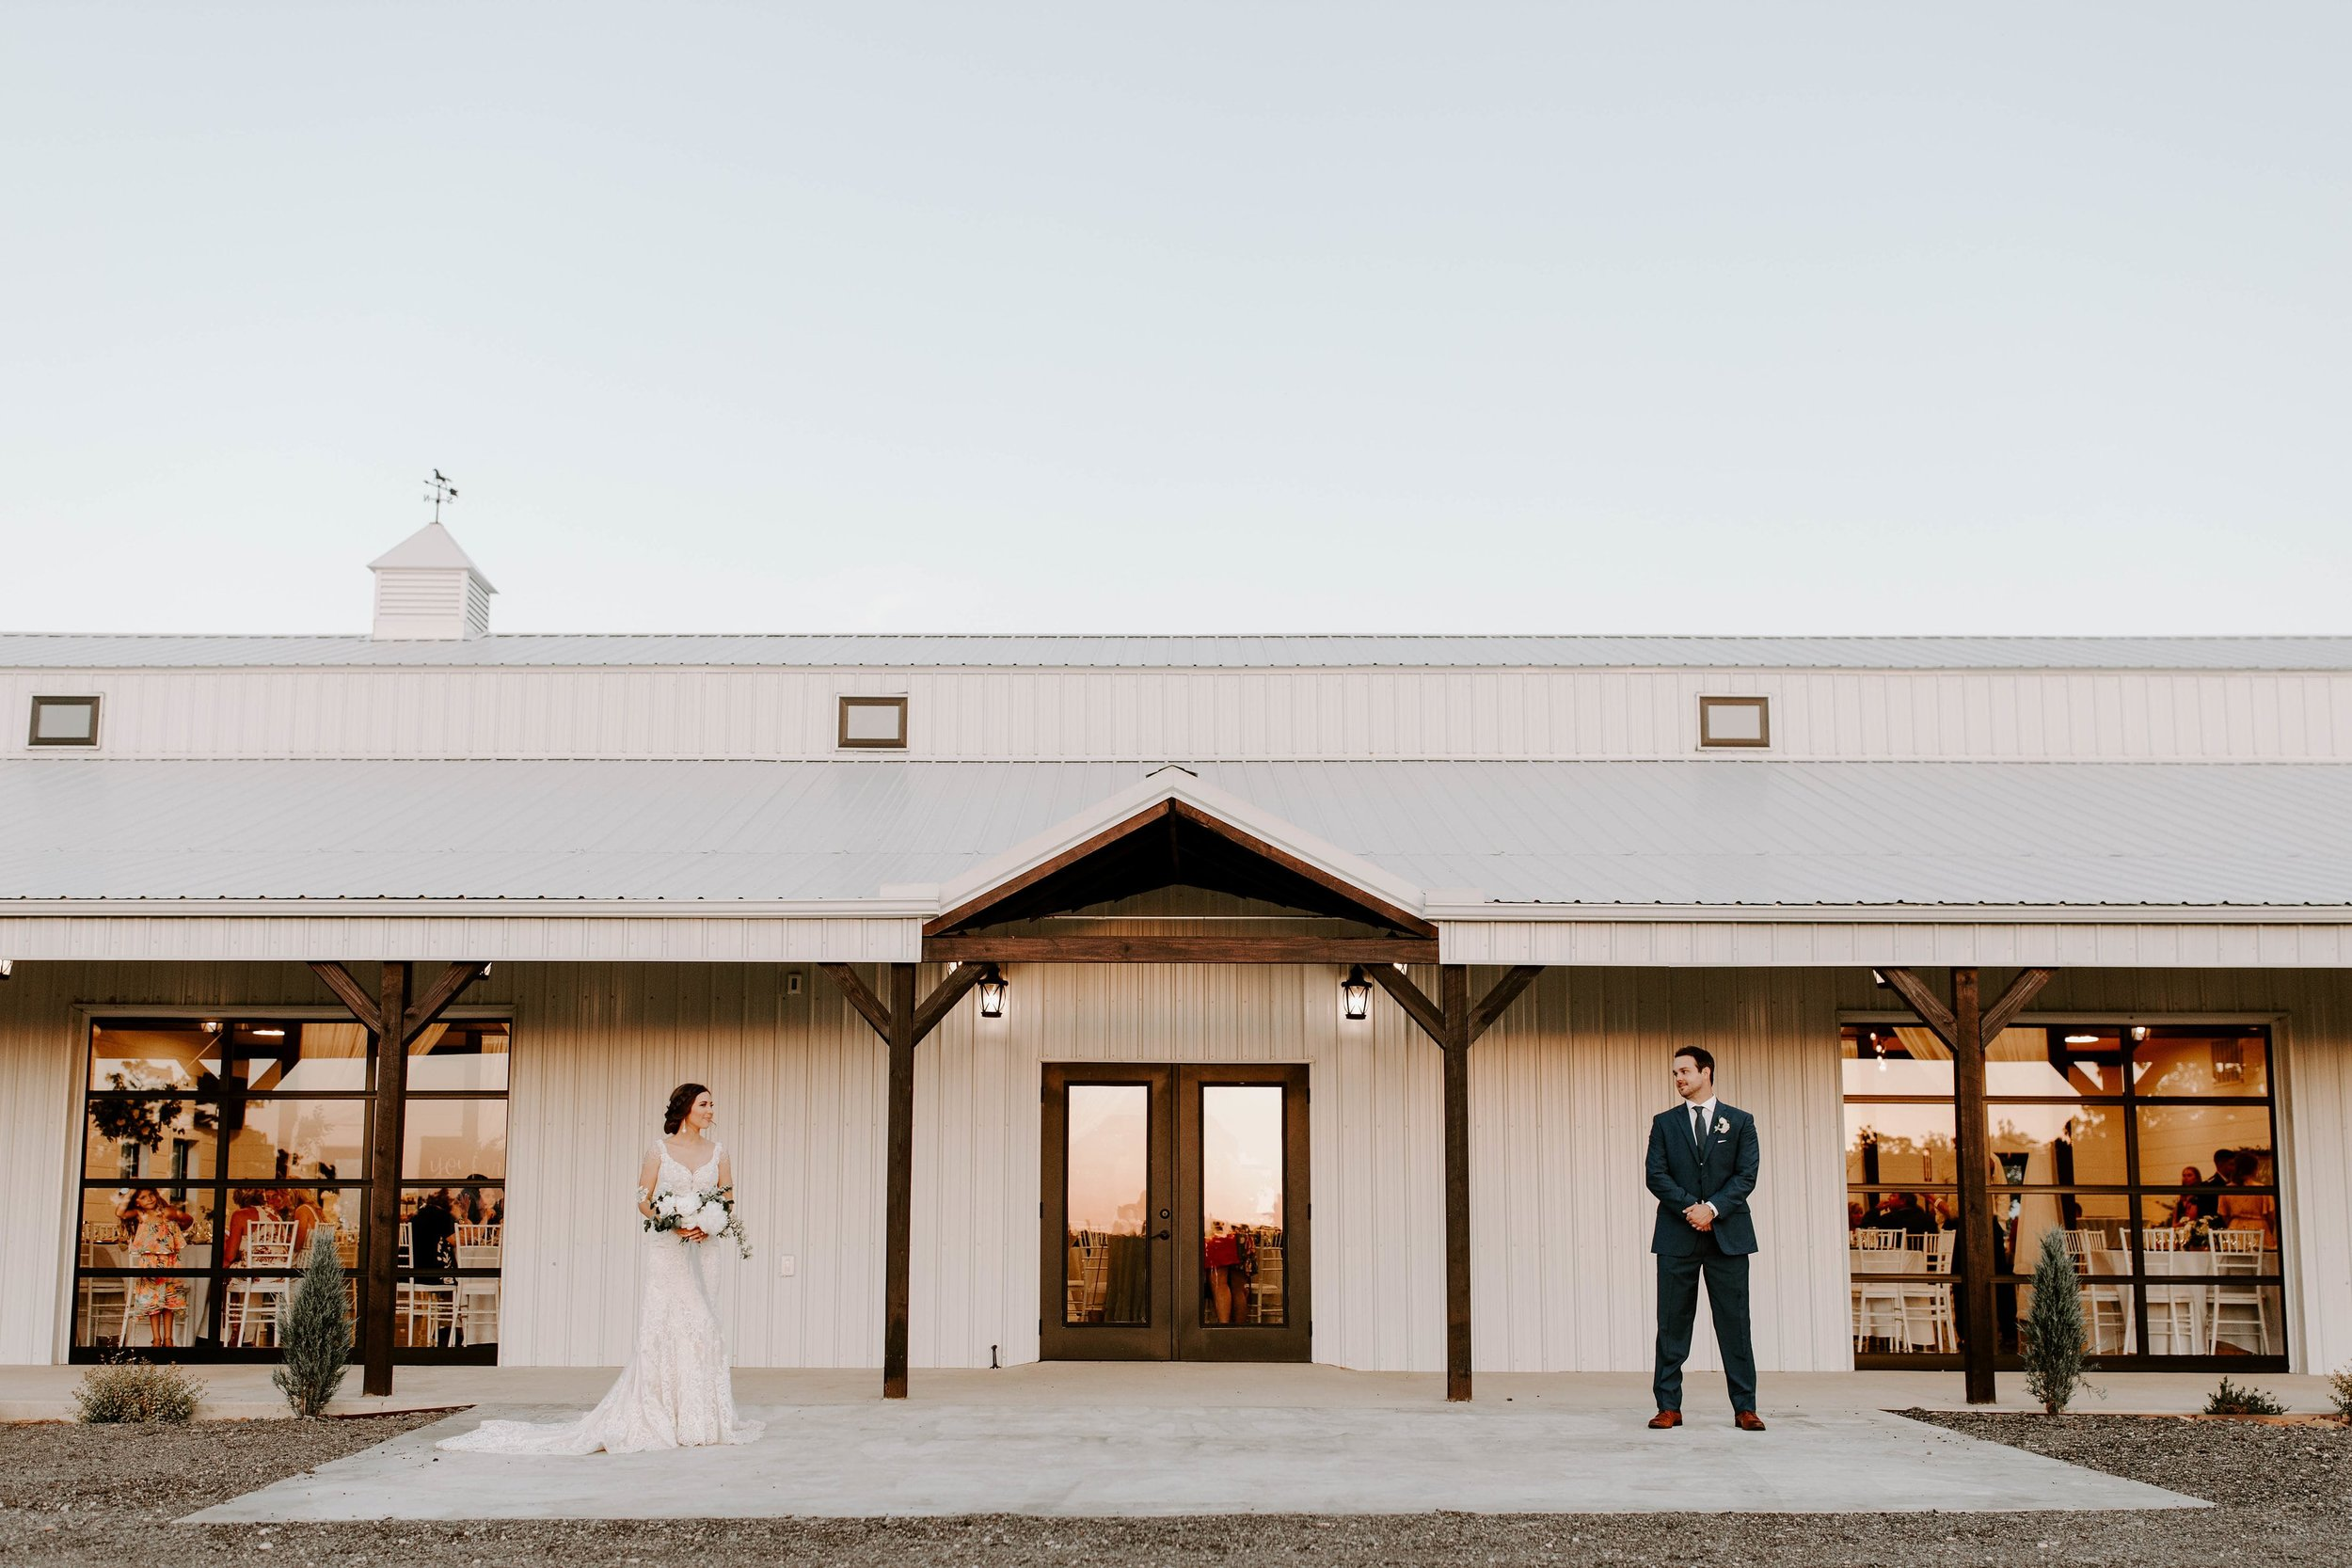 tulsa wedding venue sunset dream point ranch-min.jpg